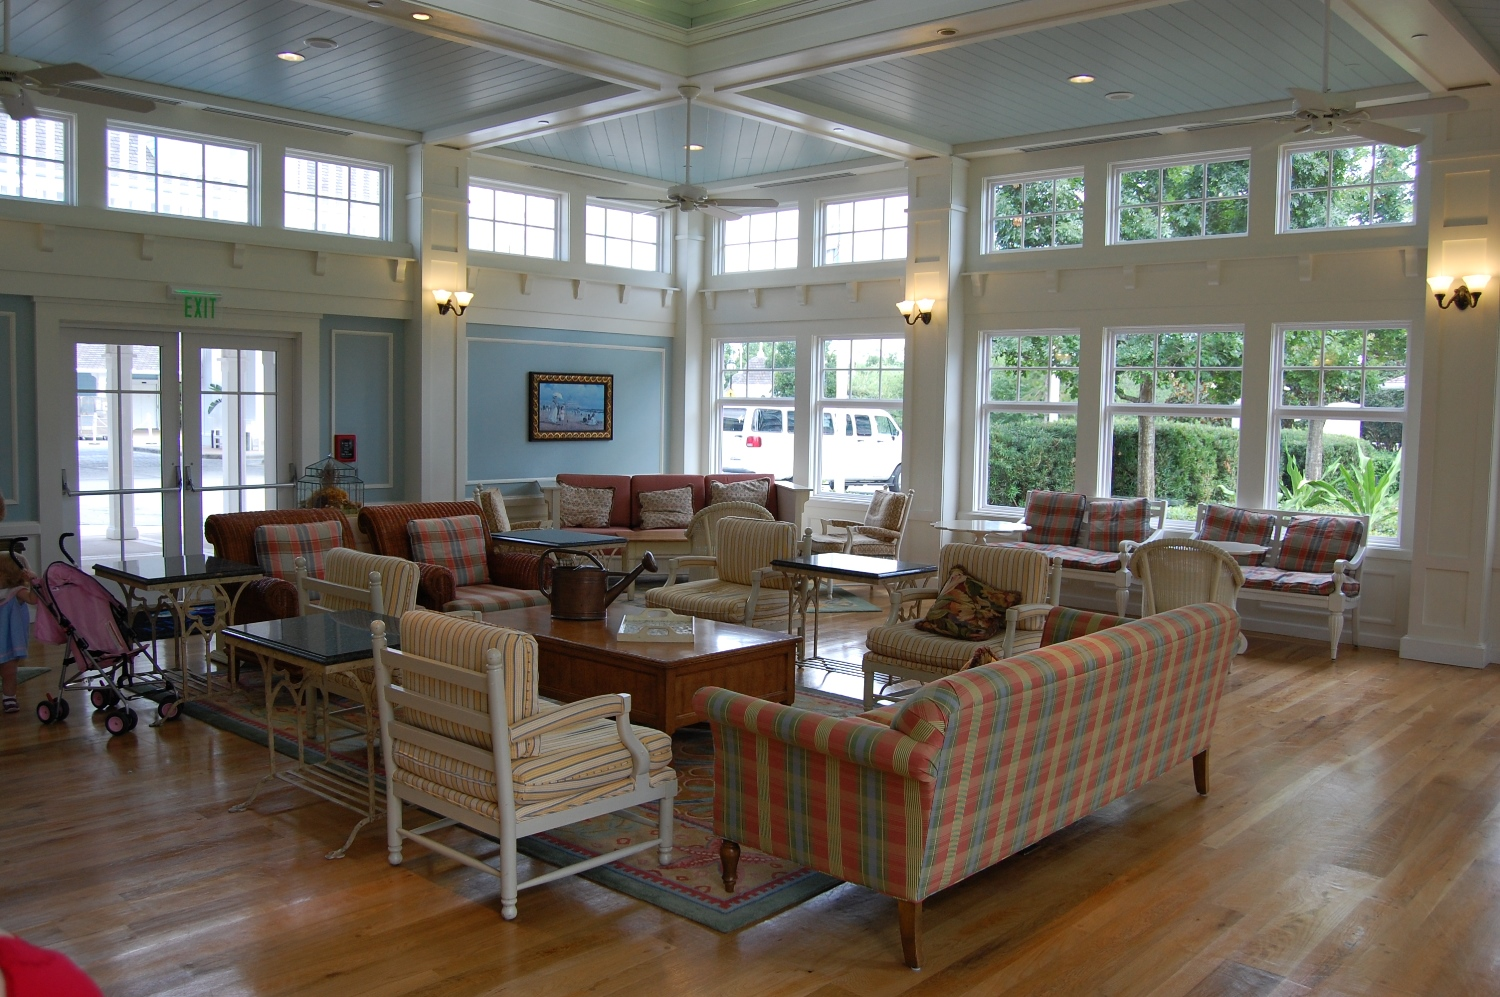 The solarium is a great place to relax and unwind and is open to all guests